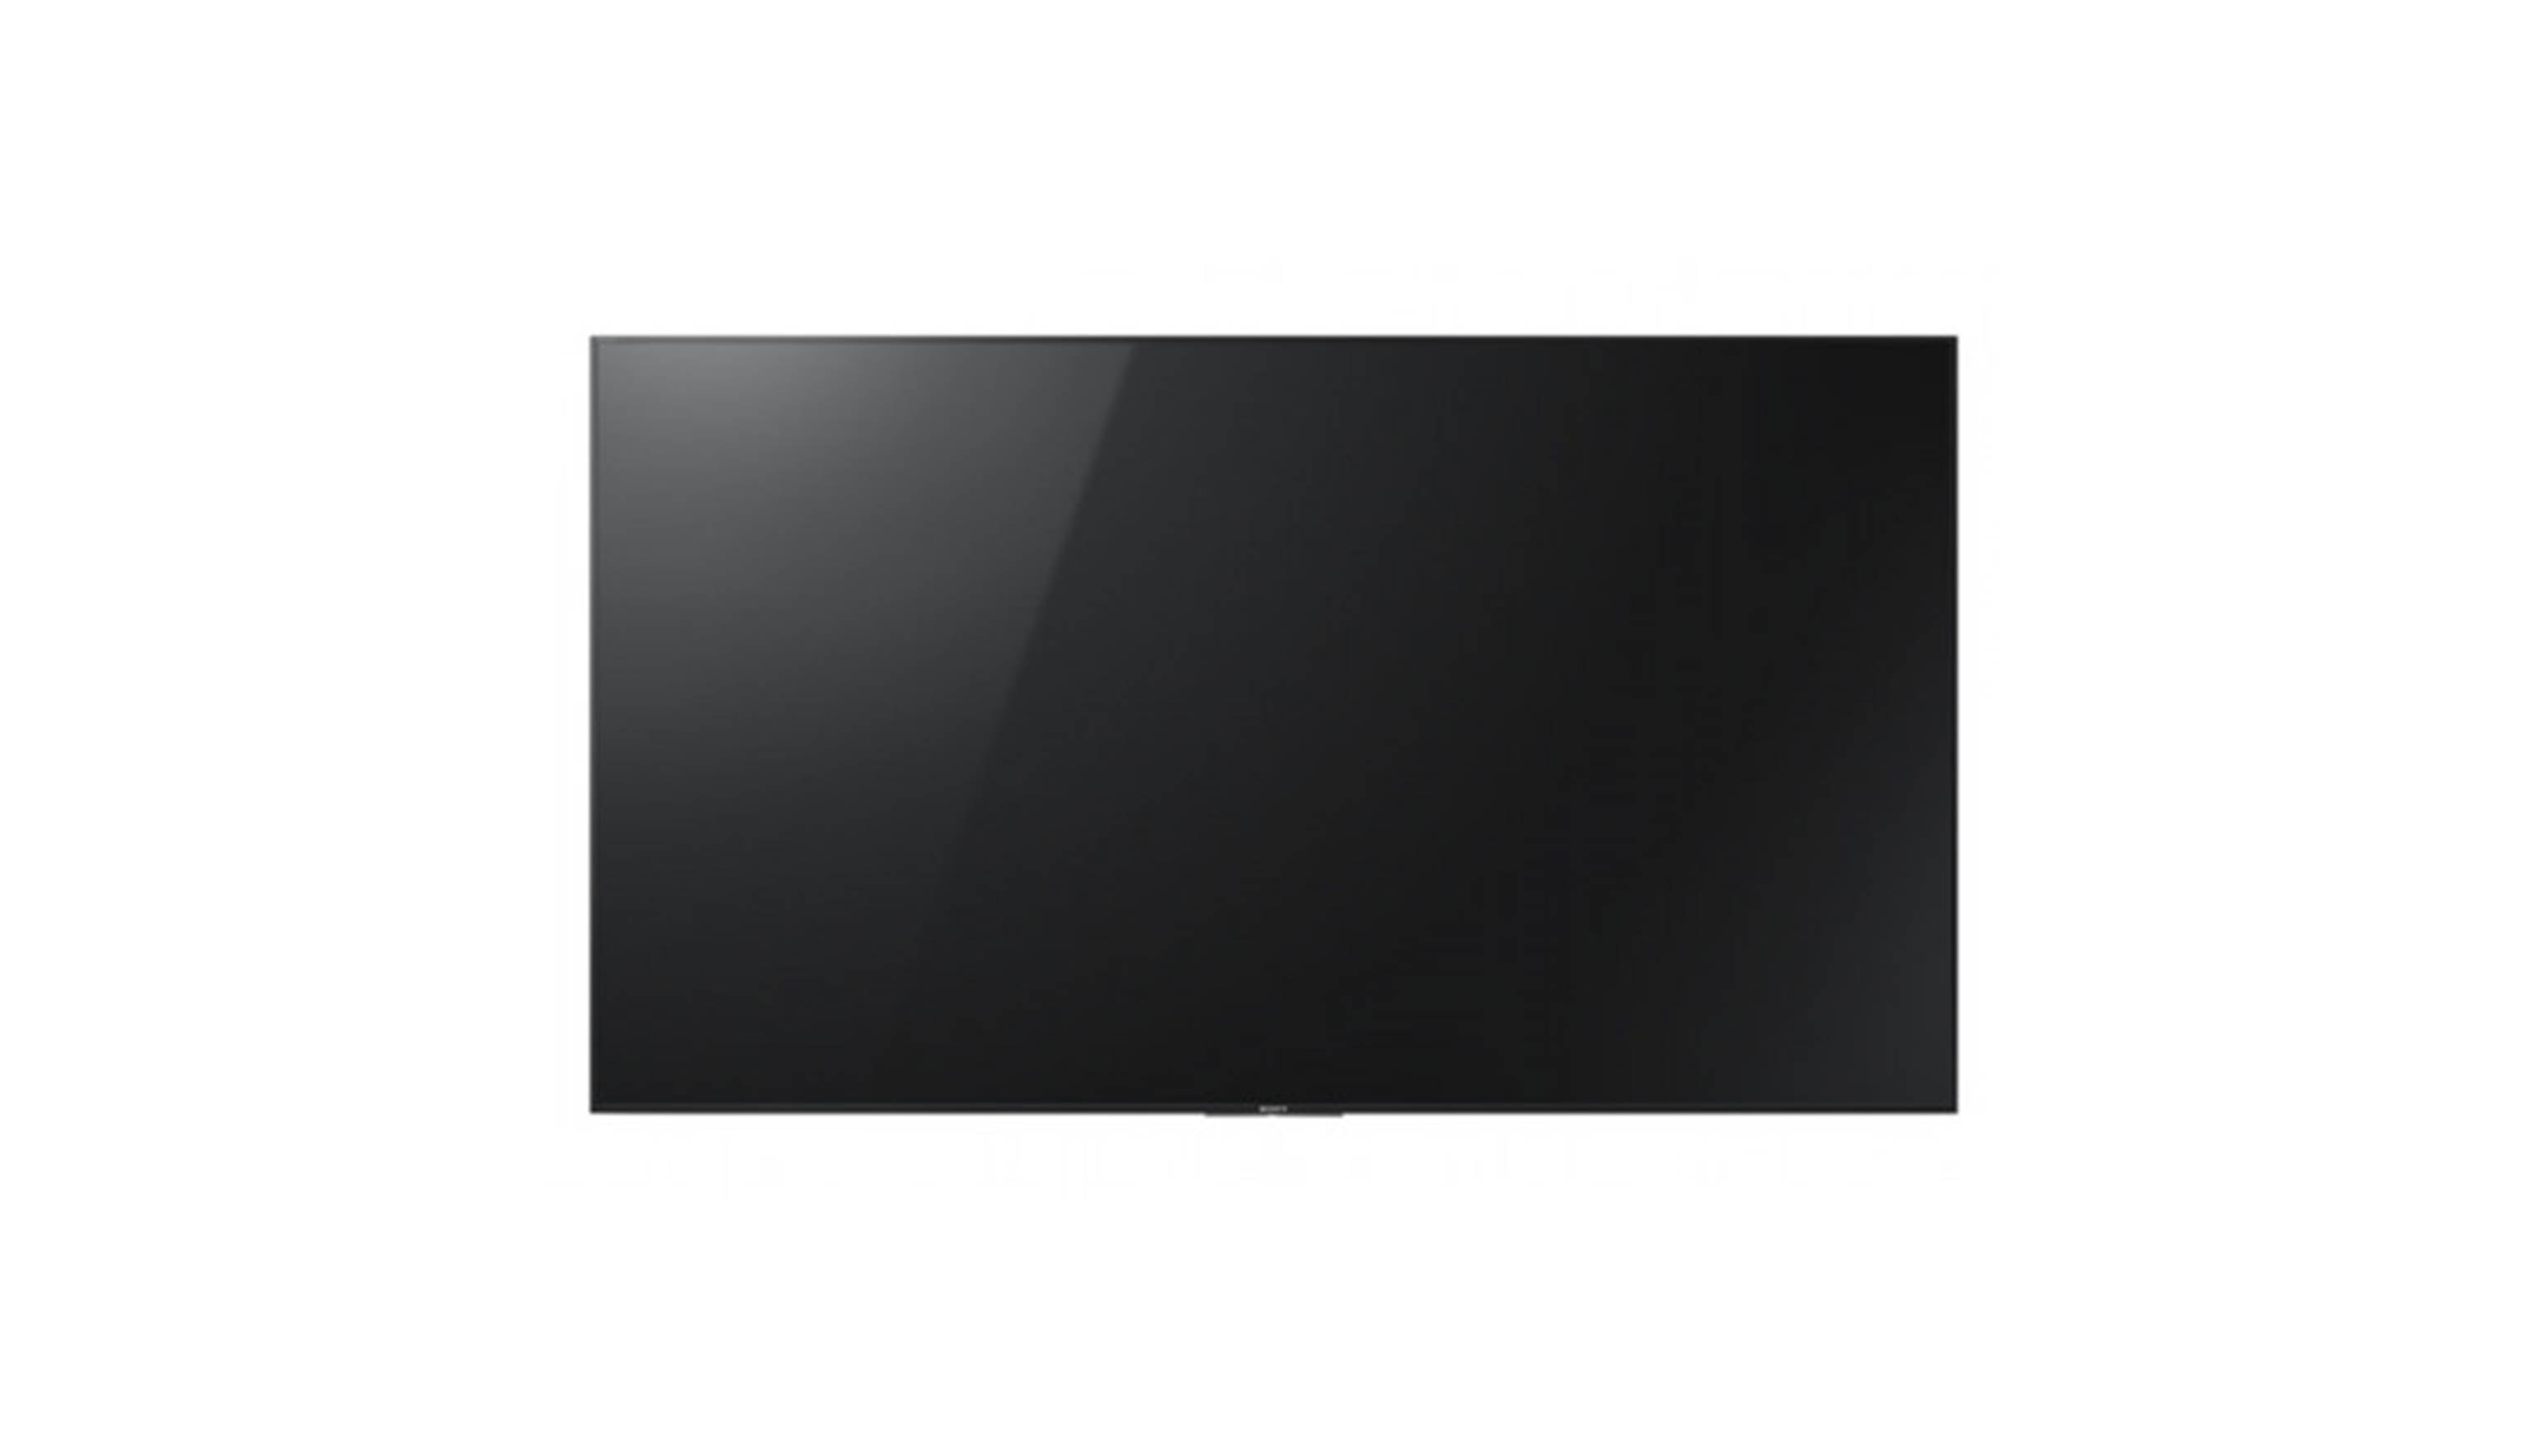 Sony KD-65X9000E 65 Android 4K Ultra HD TV - Wall Mounted view